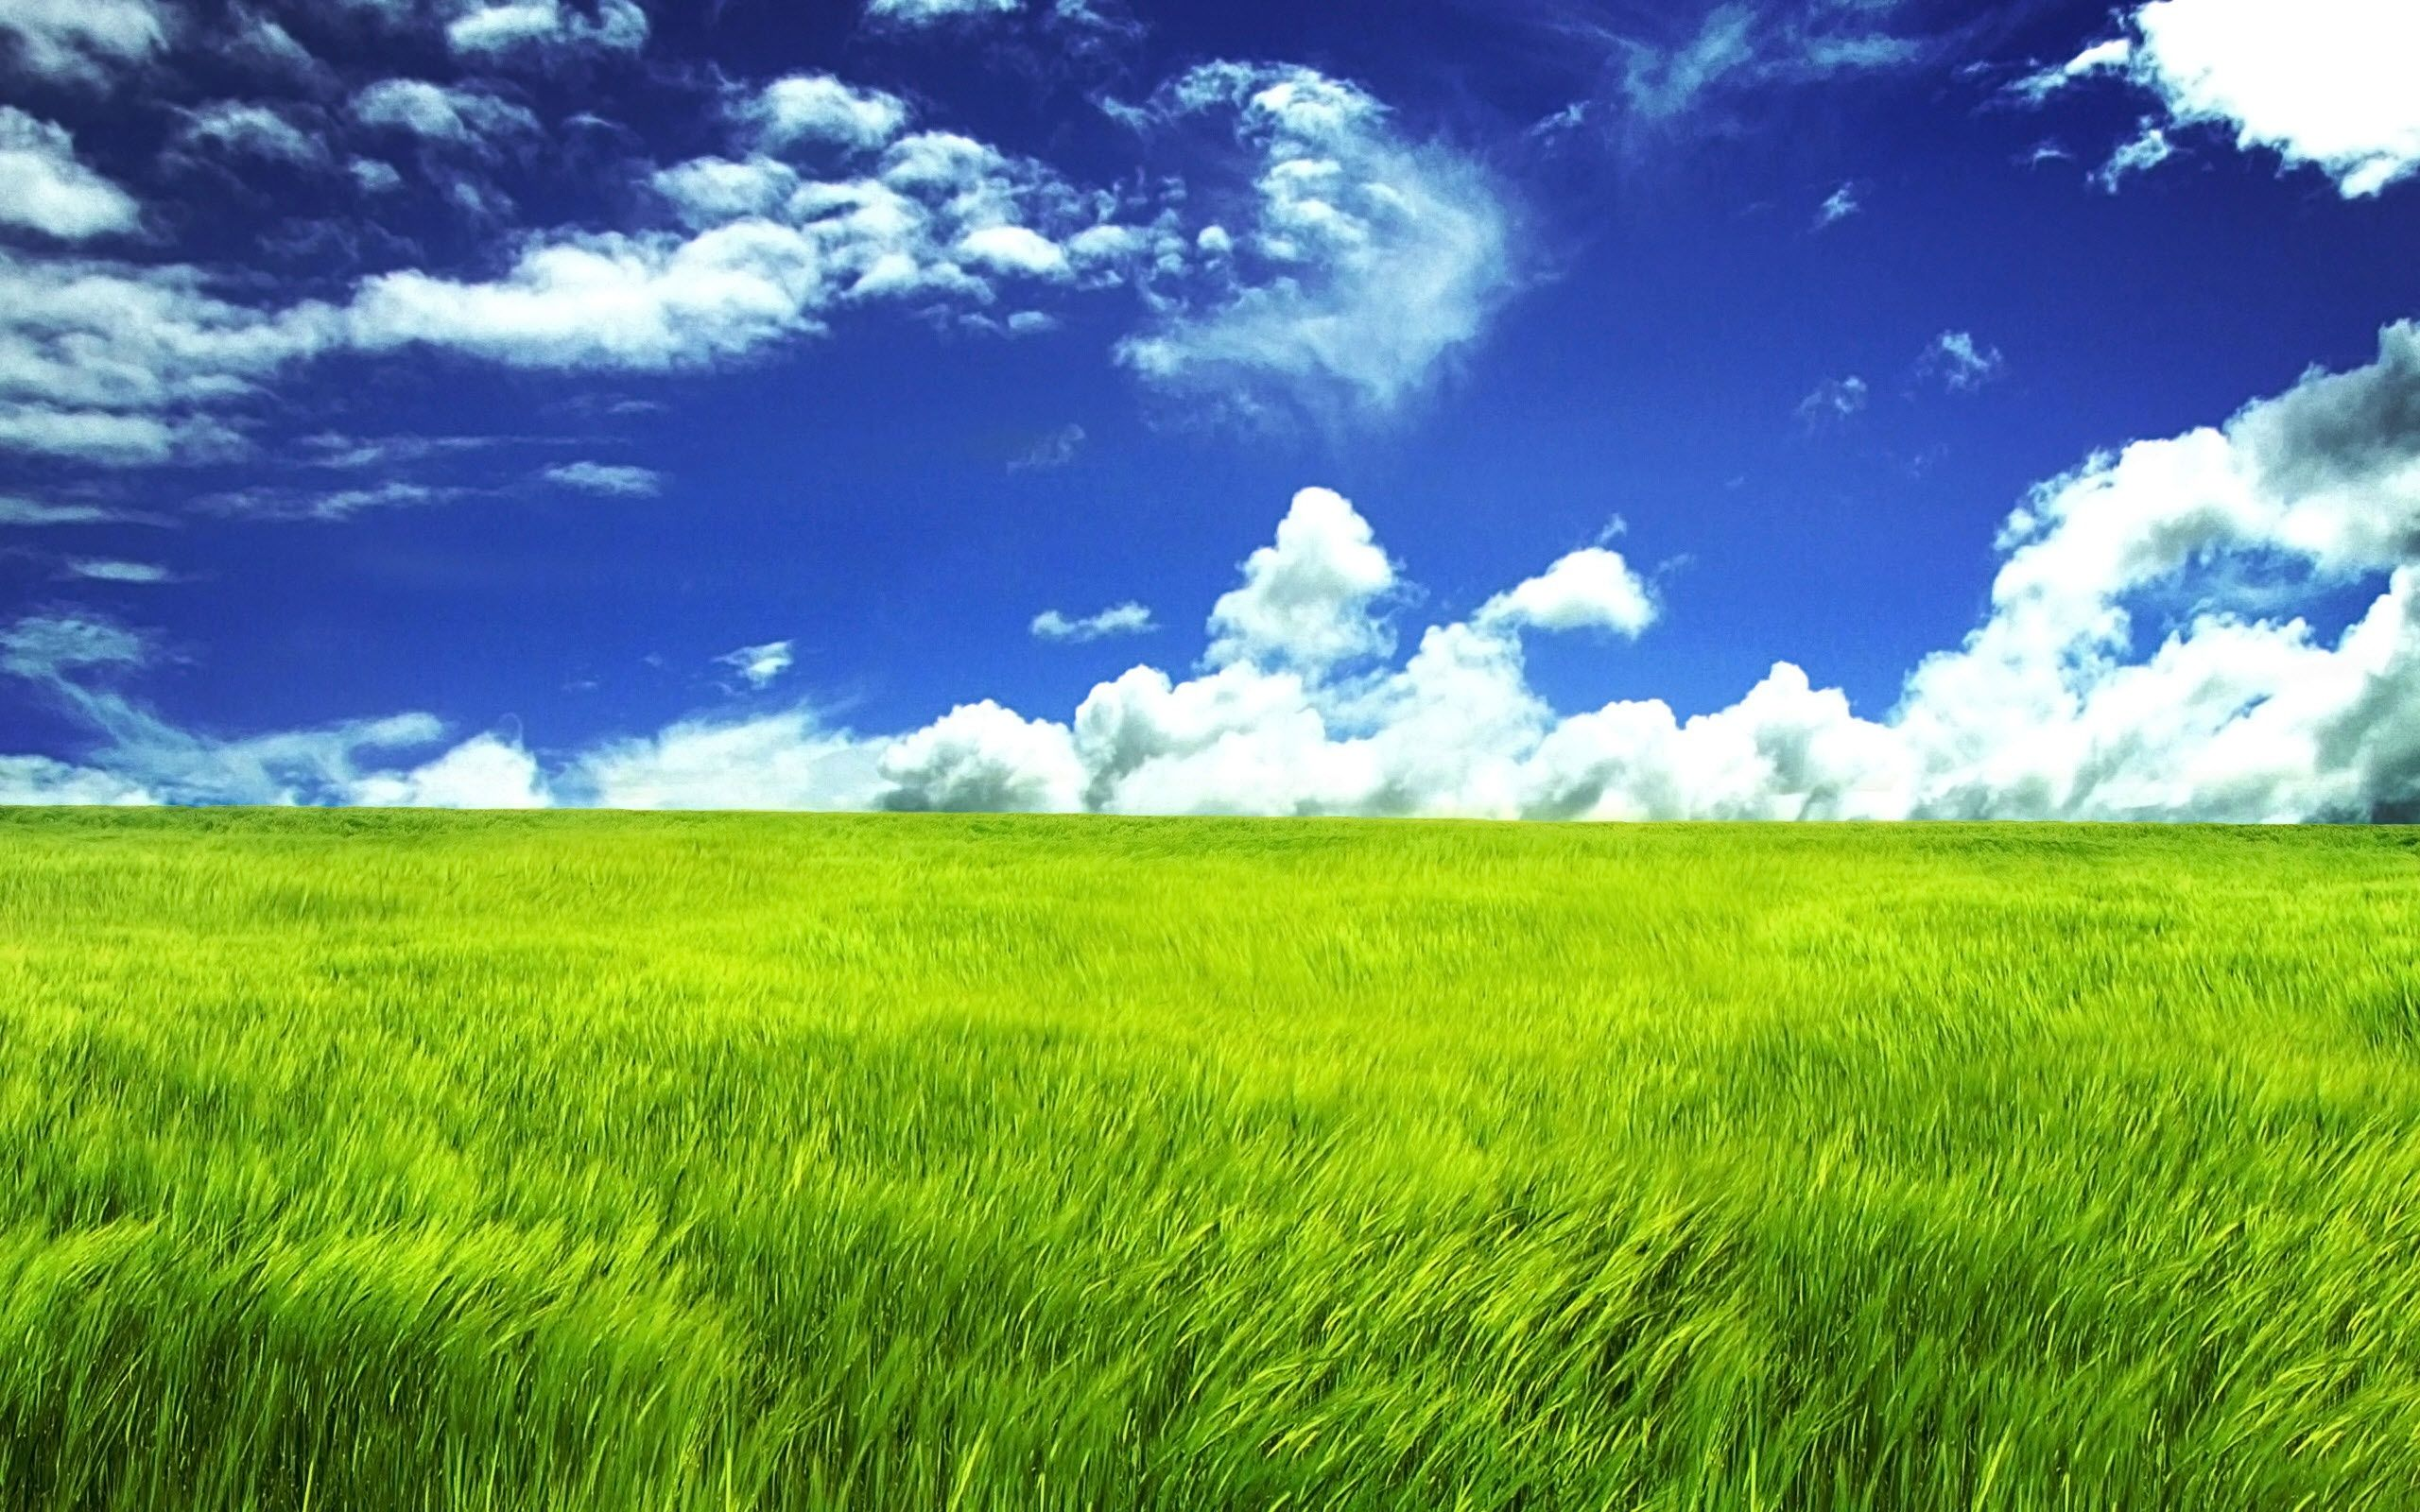 Free Download Wallpapers Grass Green Land Super Hq Blue